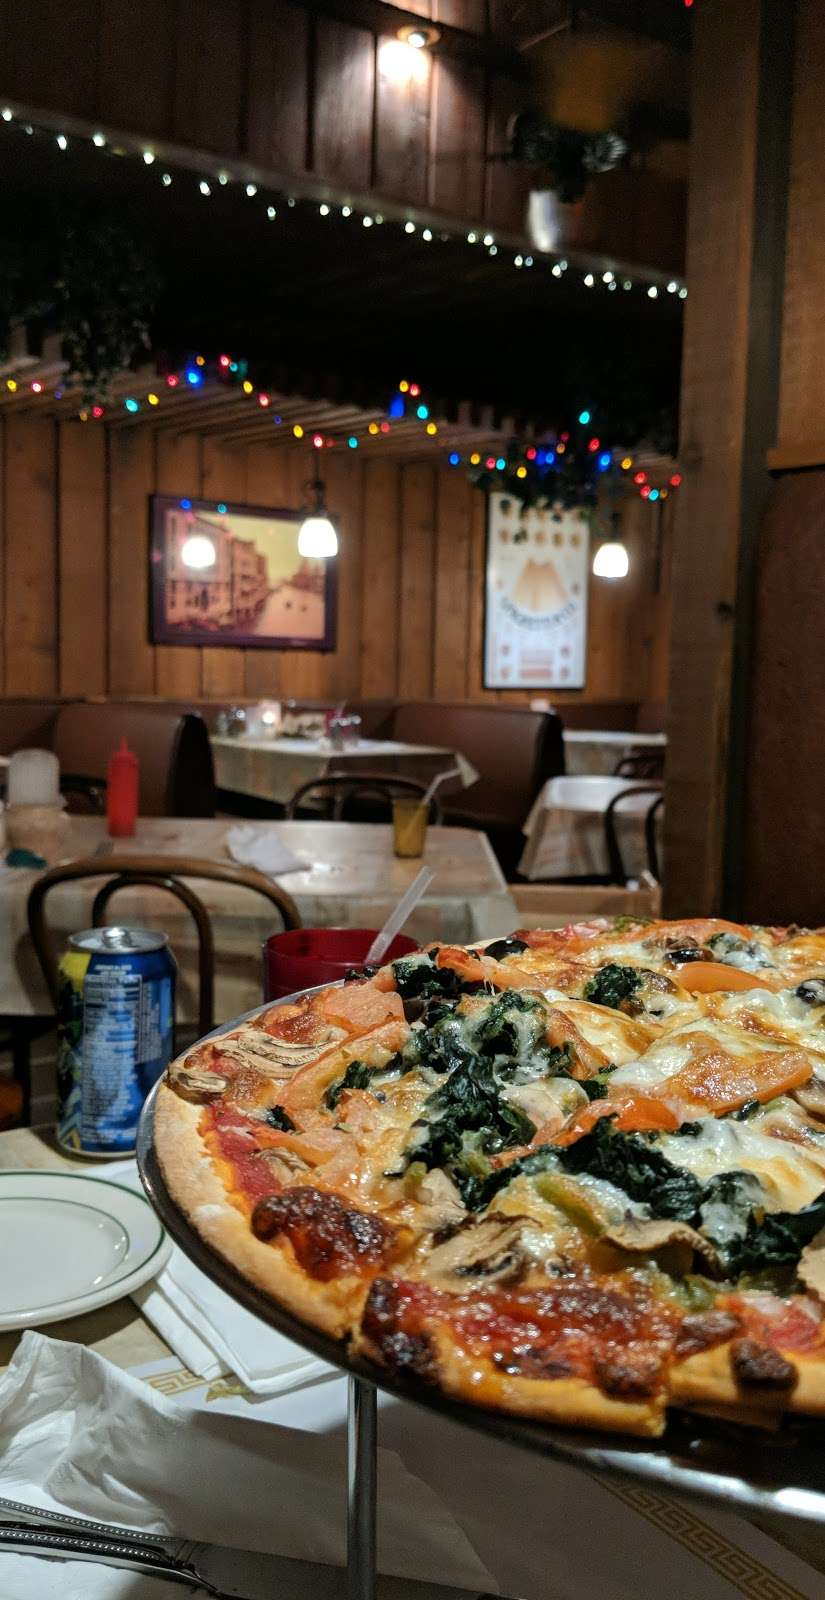 Franks Pizzeria & Restaurant - meal delivery  | Photo 7 of 10 | Address: 6506 W Belmont Ave, Chicago, IL 60634, USA | Phone: (773) 283-2564